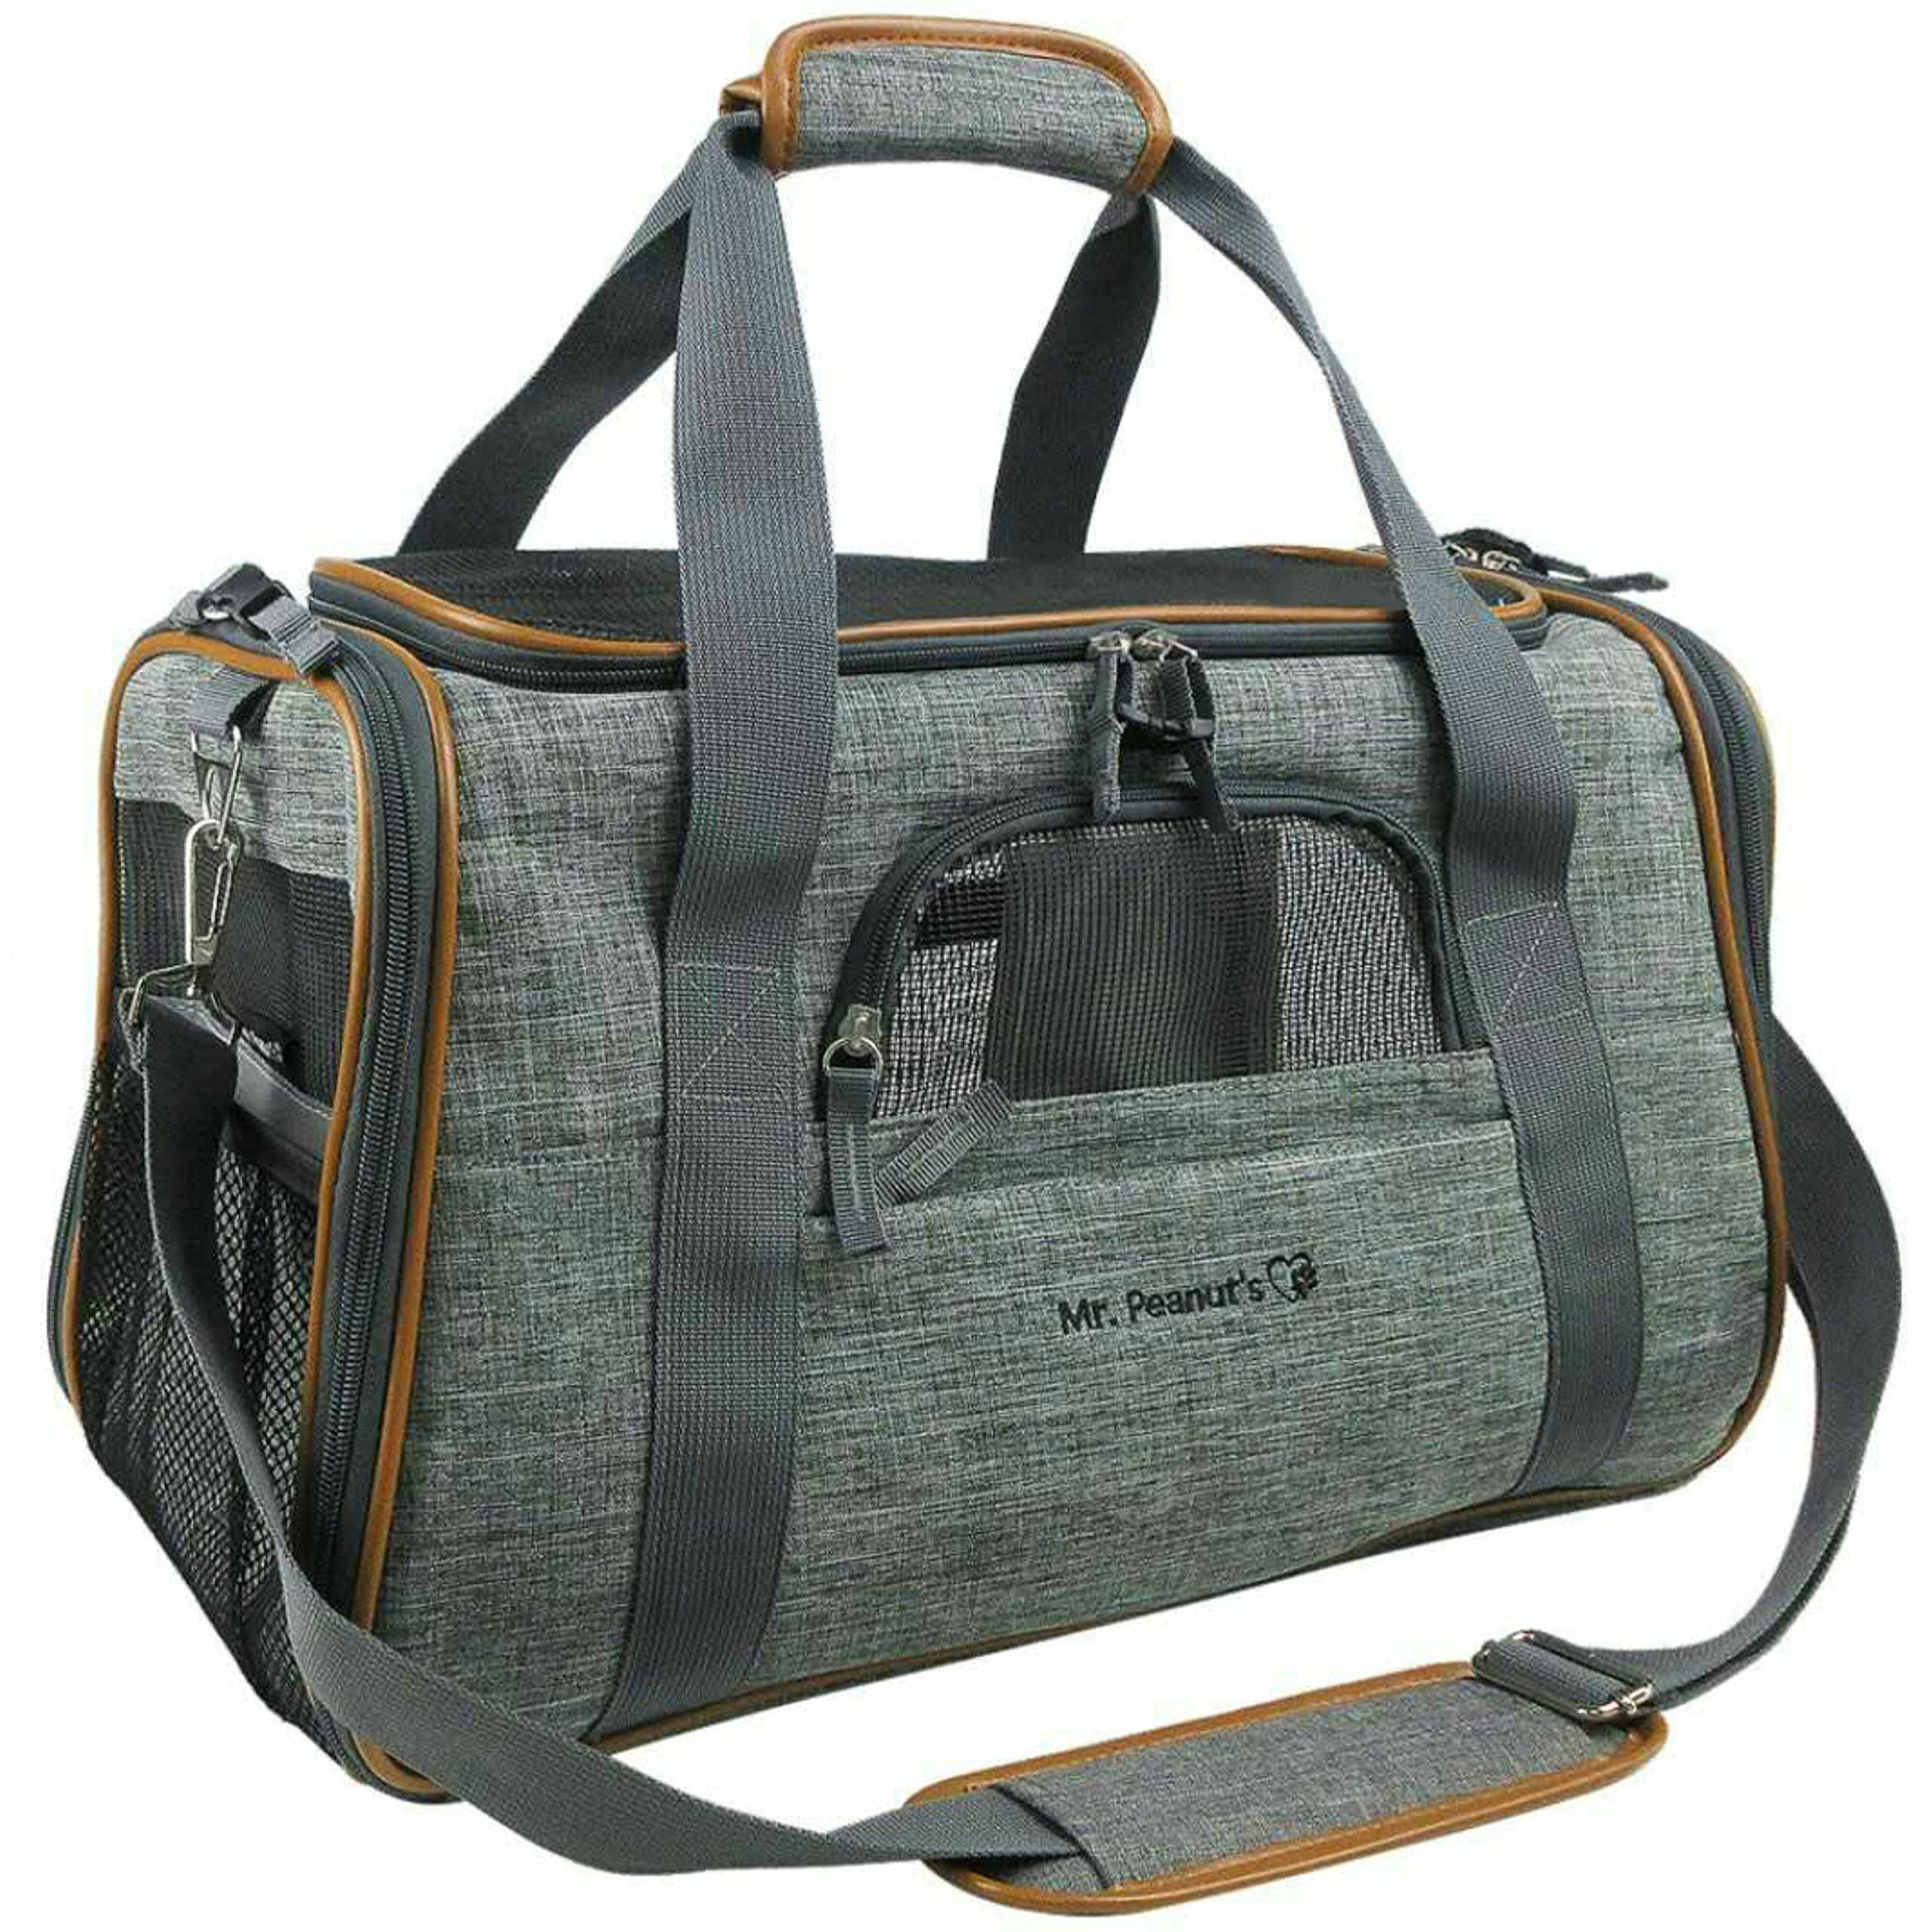 Mr. Peanut's Airline Approved Soft Sided Pet Carrier, Luxury Travel Tote with Premium Zippers & Safety Clasps, Plush Faux Fleece Bedding with a Sturdy Plywood Base, 18LX10.5WX11''H (Twilight Gray)